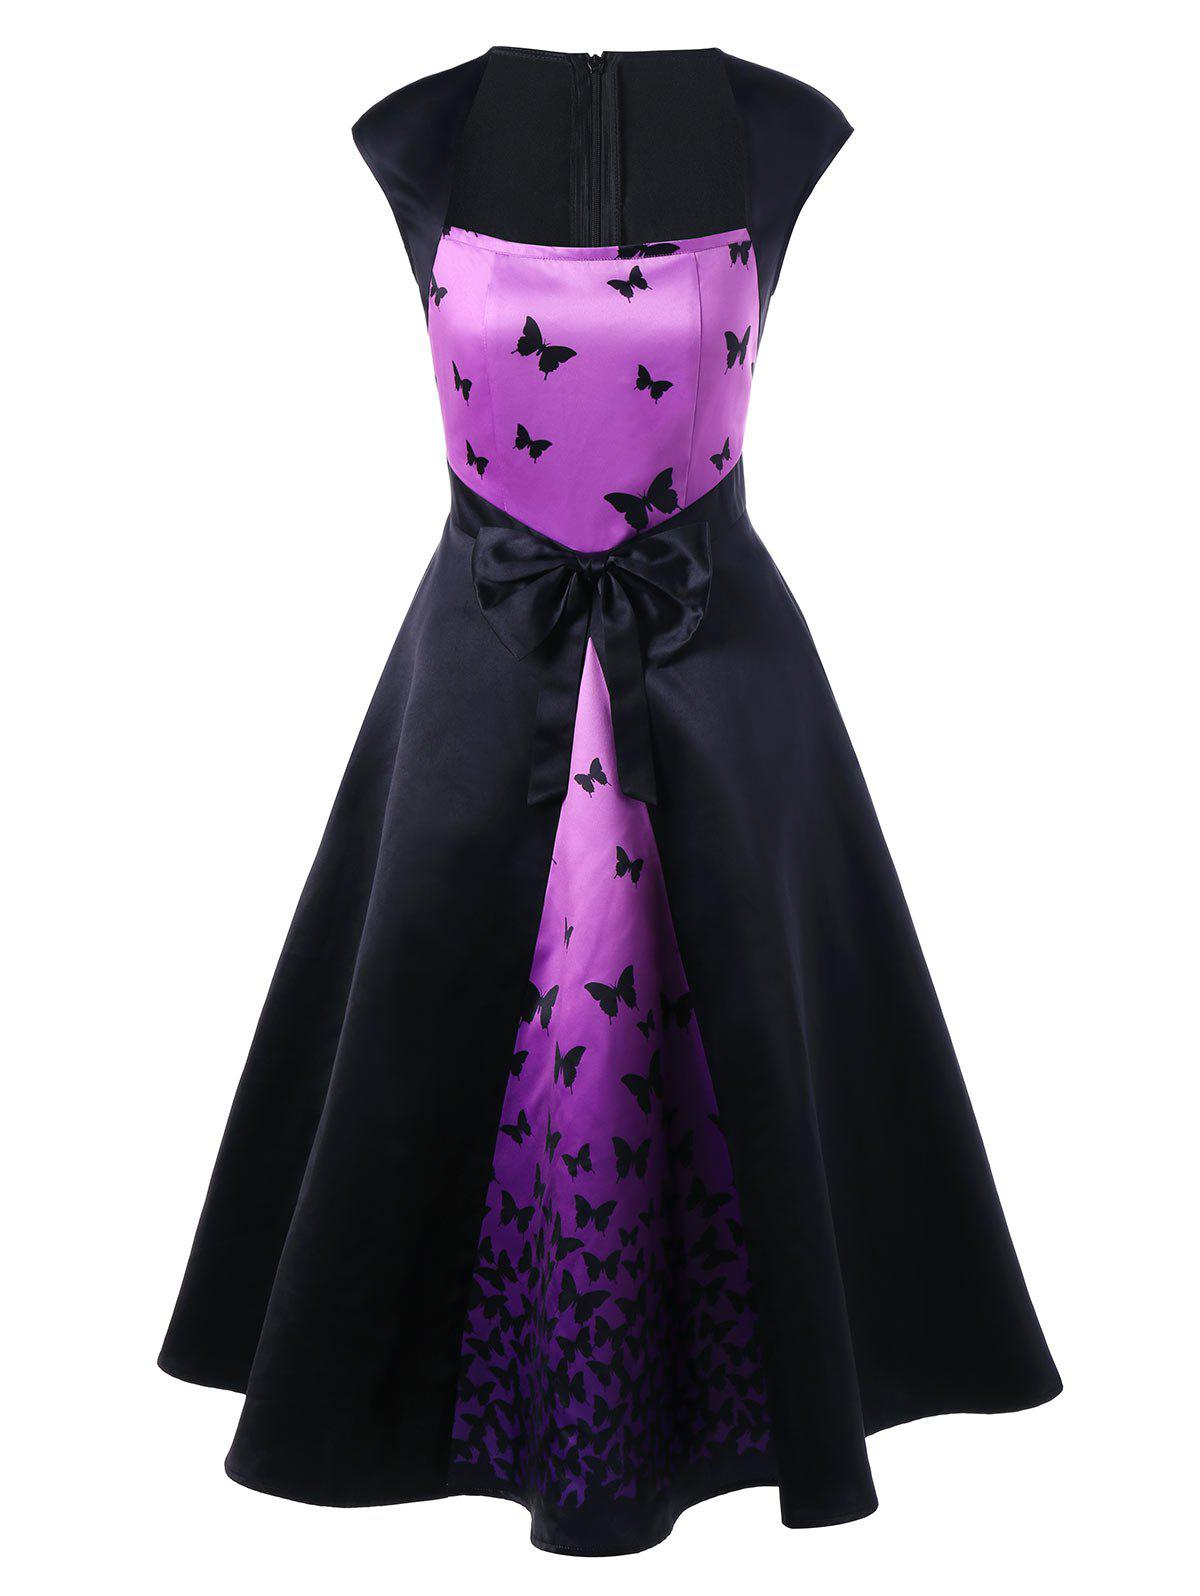 Bowknot Embellished Butterfly Printed Square Neck Retro Dress - BLACK XL